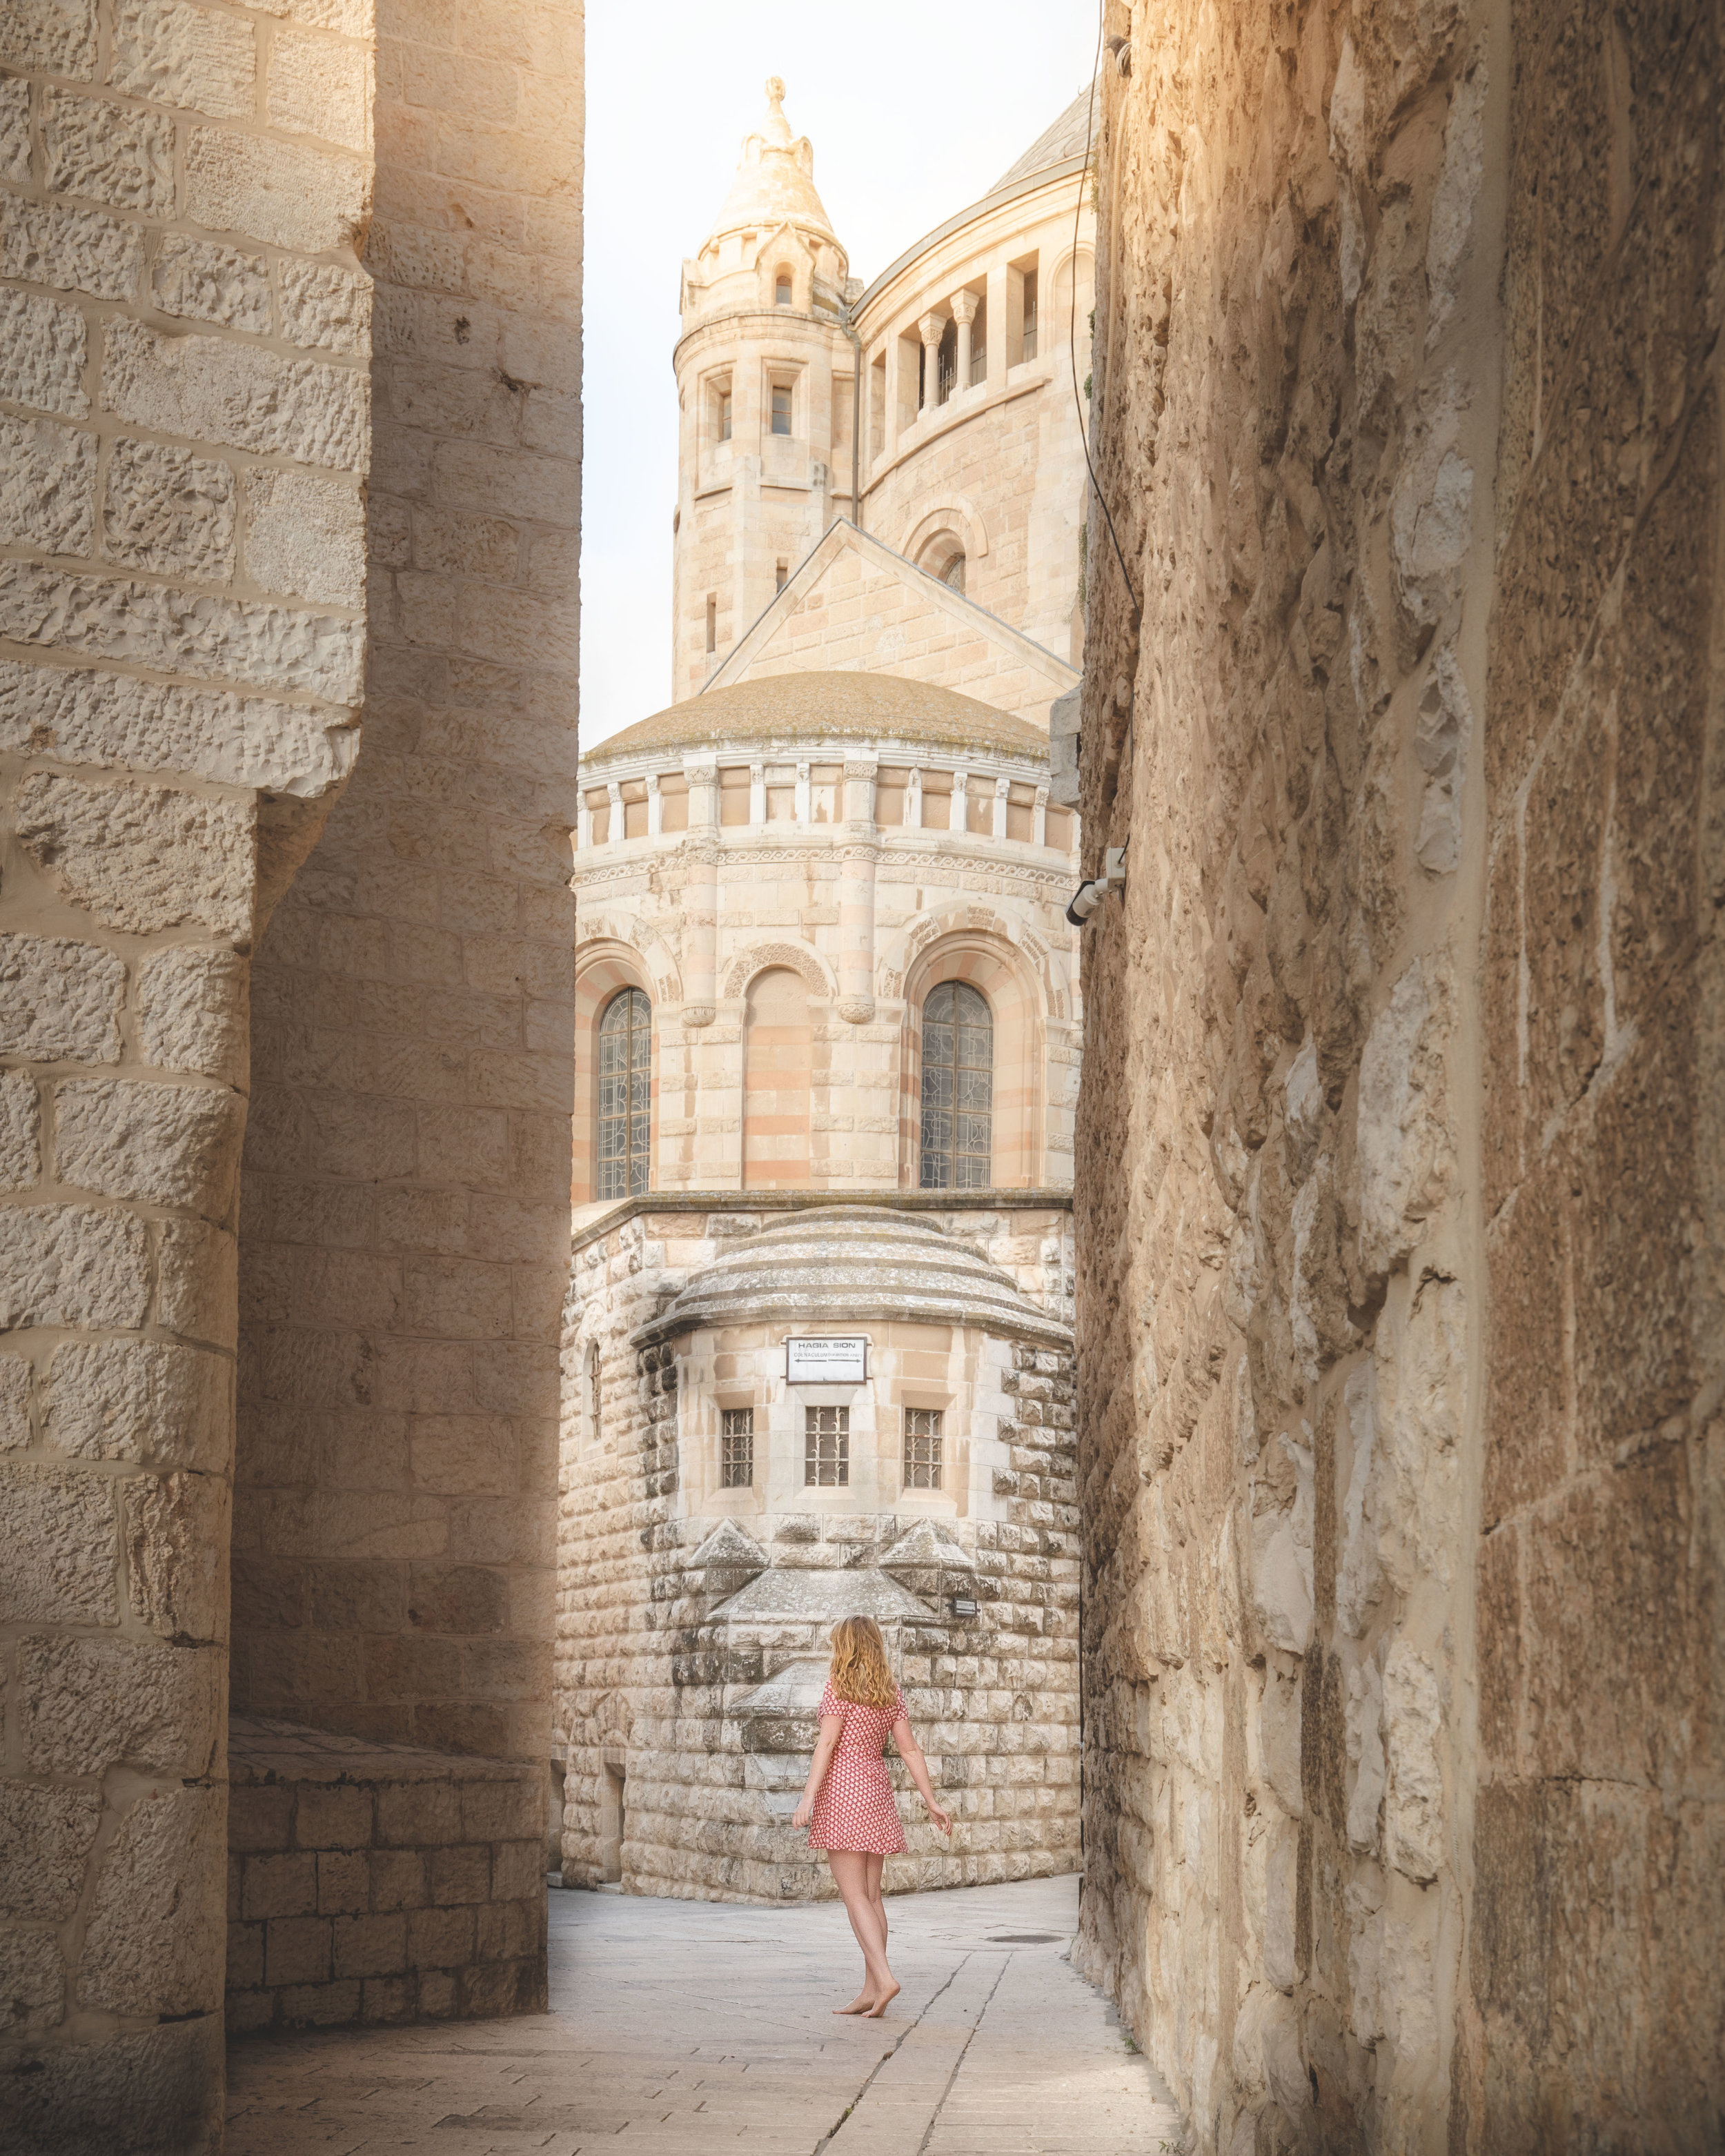 The Cenacle in Jerusalem